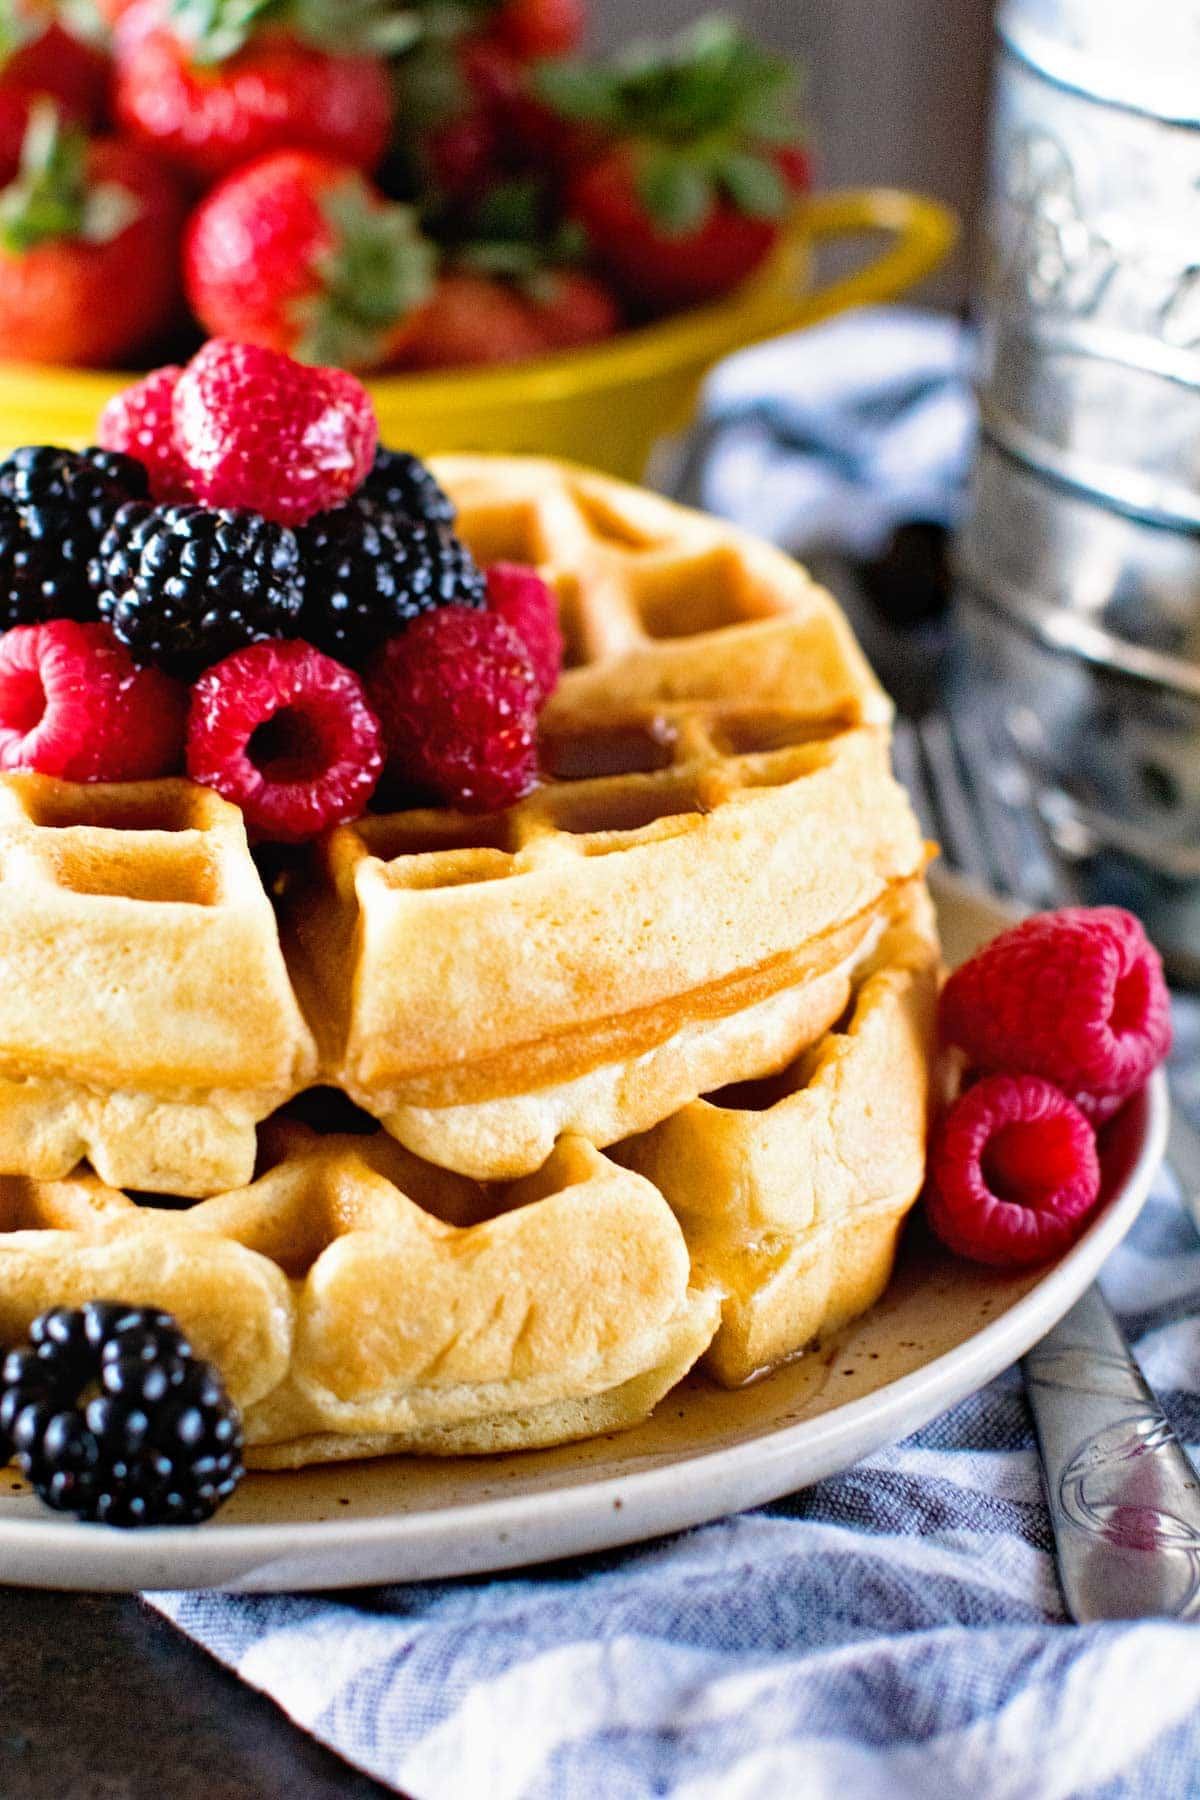 homemade waffle recipe topped with raspberries, blackberries and strawberries.